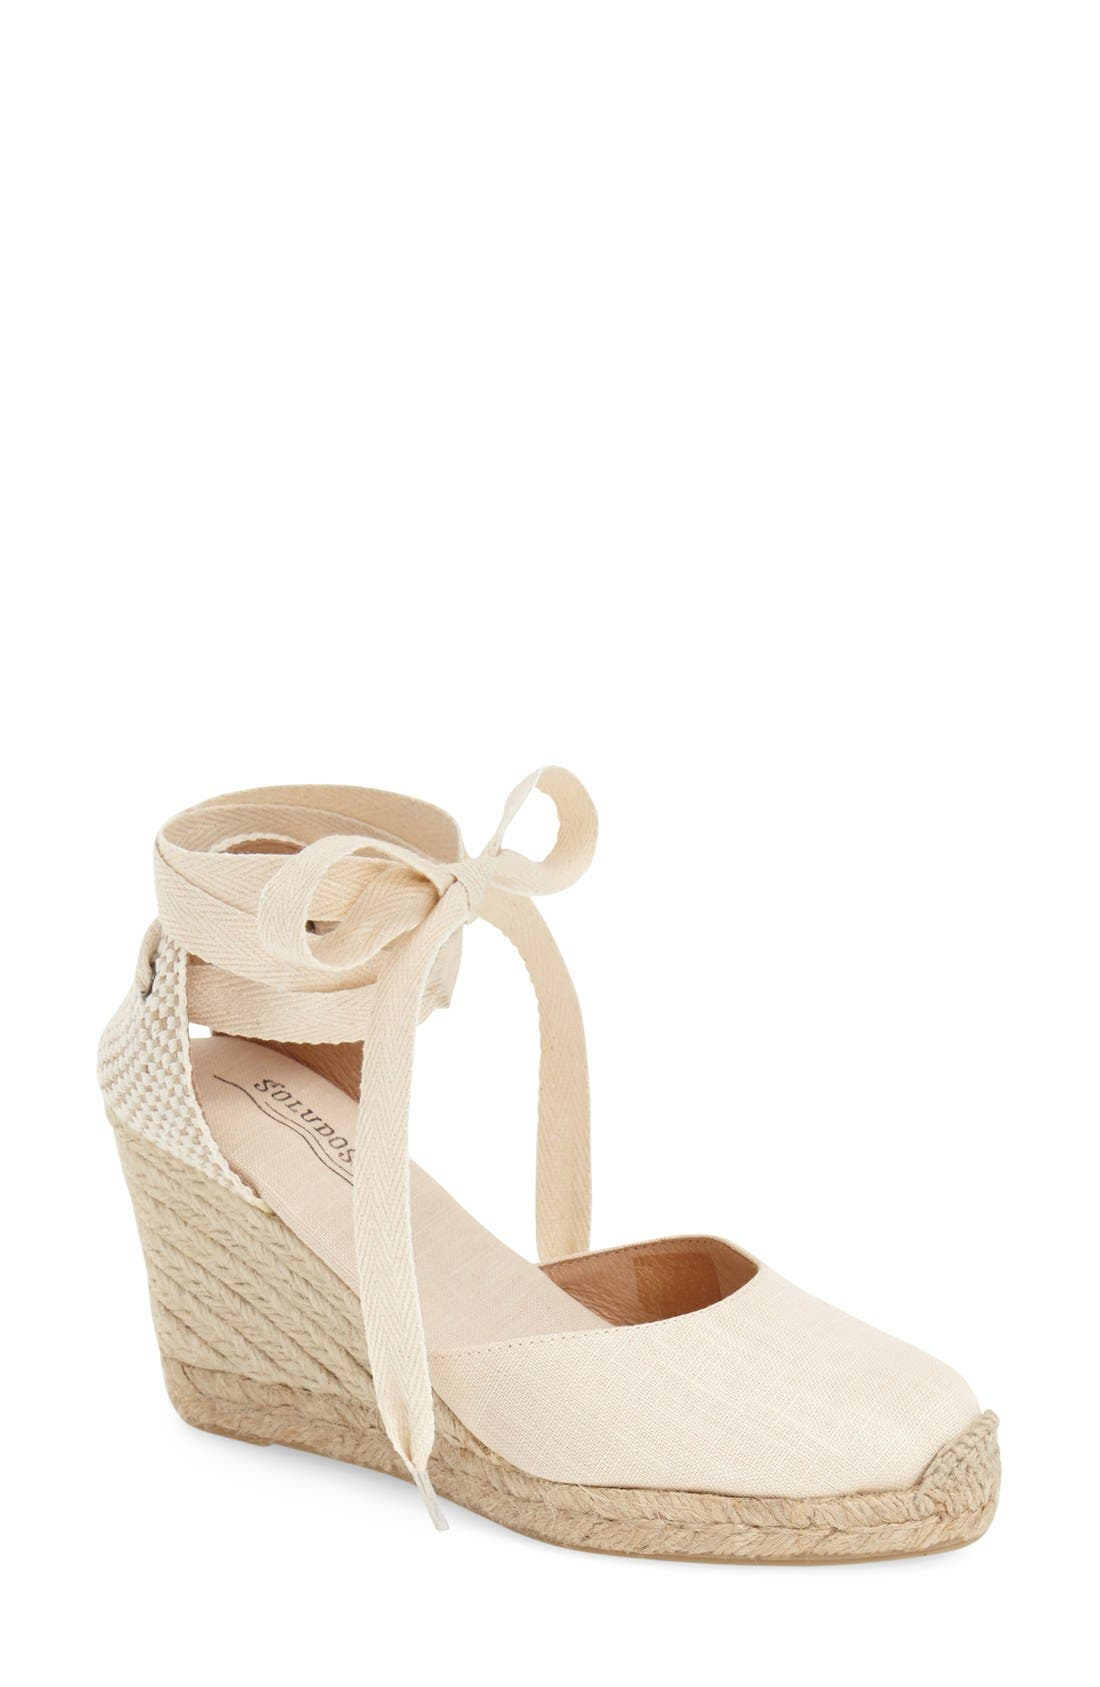 Soludos Canvases WEDGE LACE-UP ESPADRILLE SANDAL